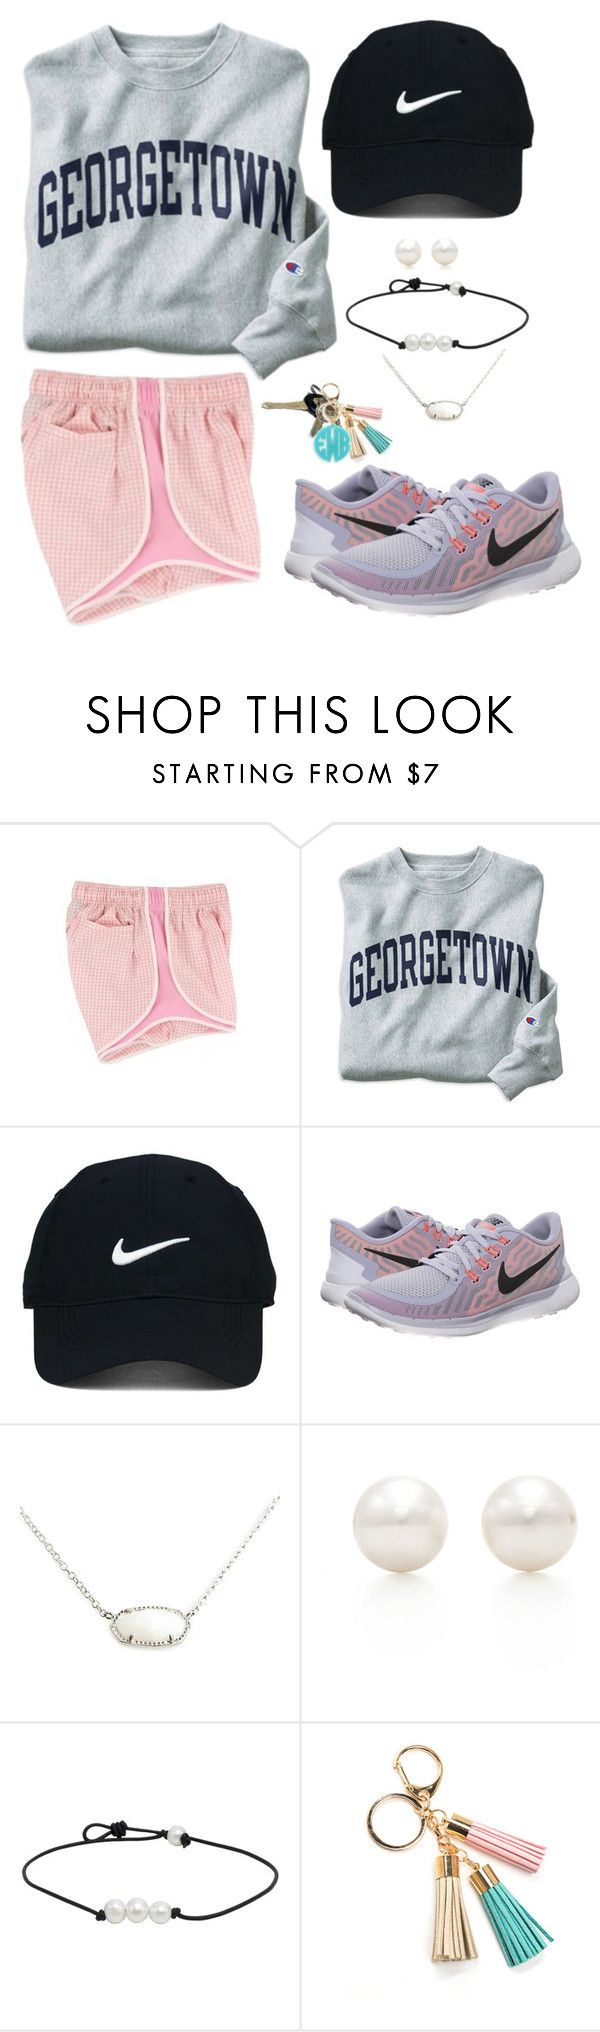 """""""georgetown//gingham//grey"""" by molliekatemcc ❤ liked on Polyvore featuring Champion, Nike Golf, NIKE, Kendra Scott, Tiffany & Co., Avon, Moon and Lola and mksfavs"""